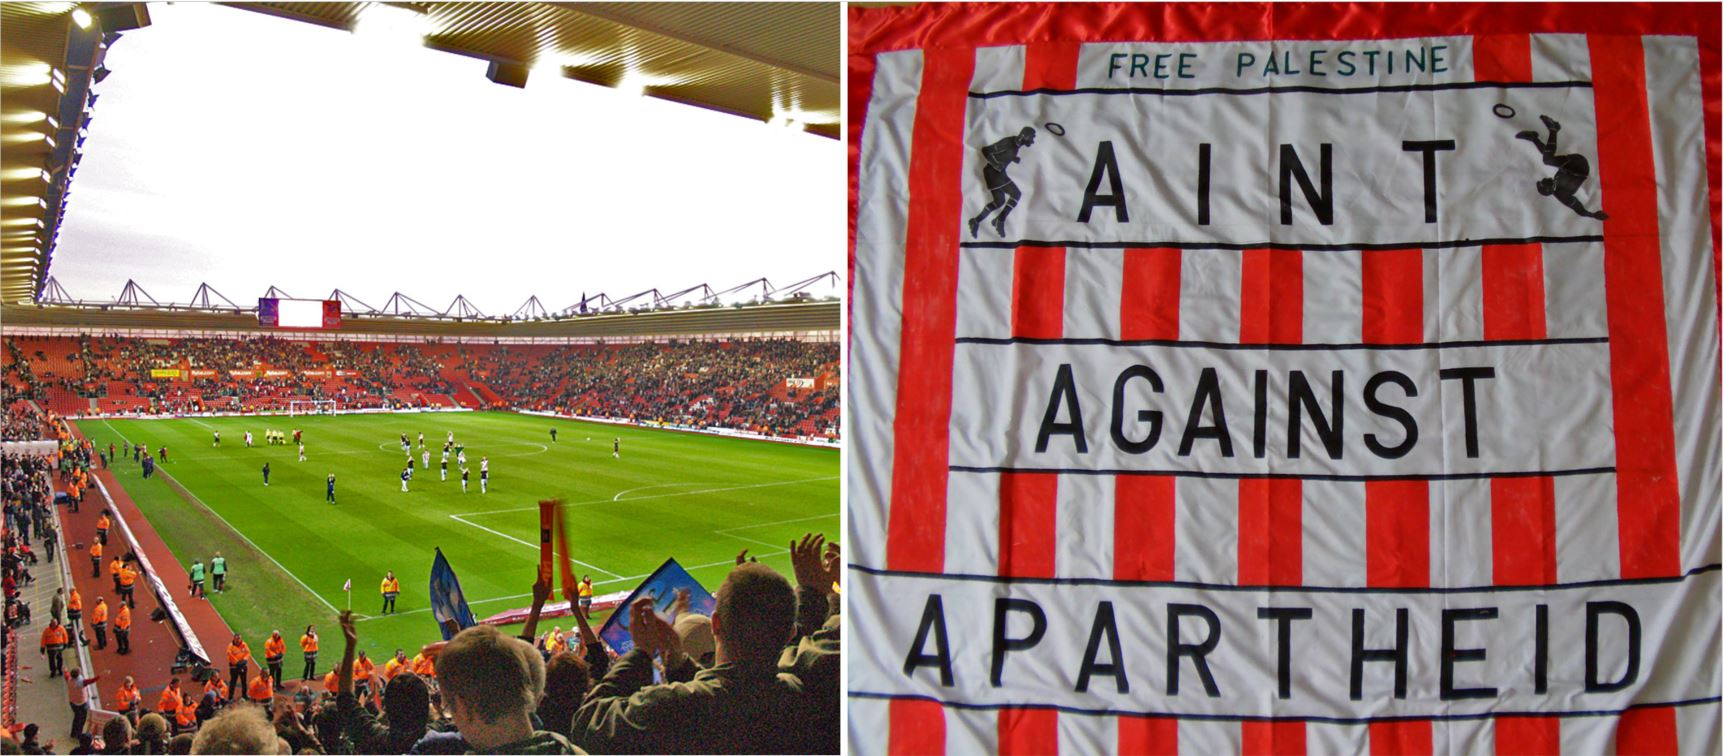 Anti-Israel activists planning protest at tonight's Southampton football match